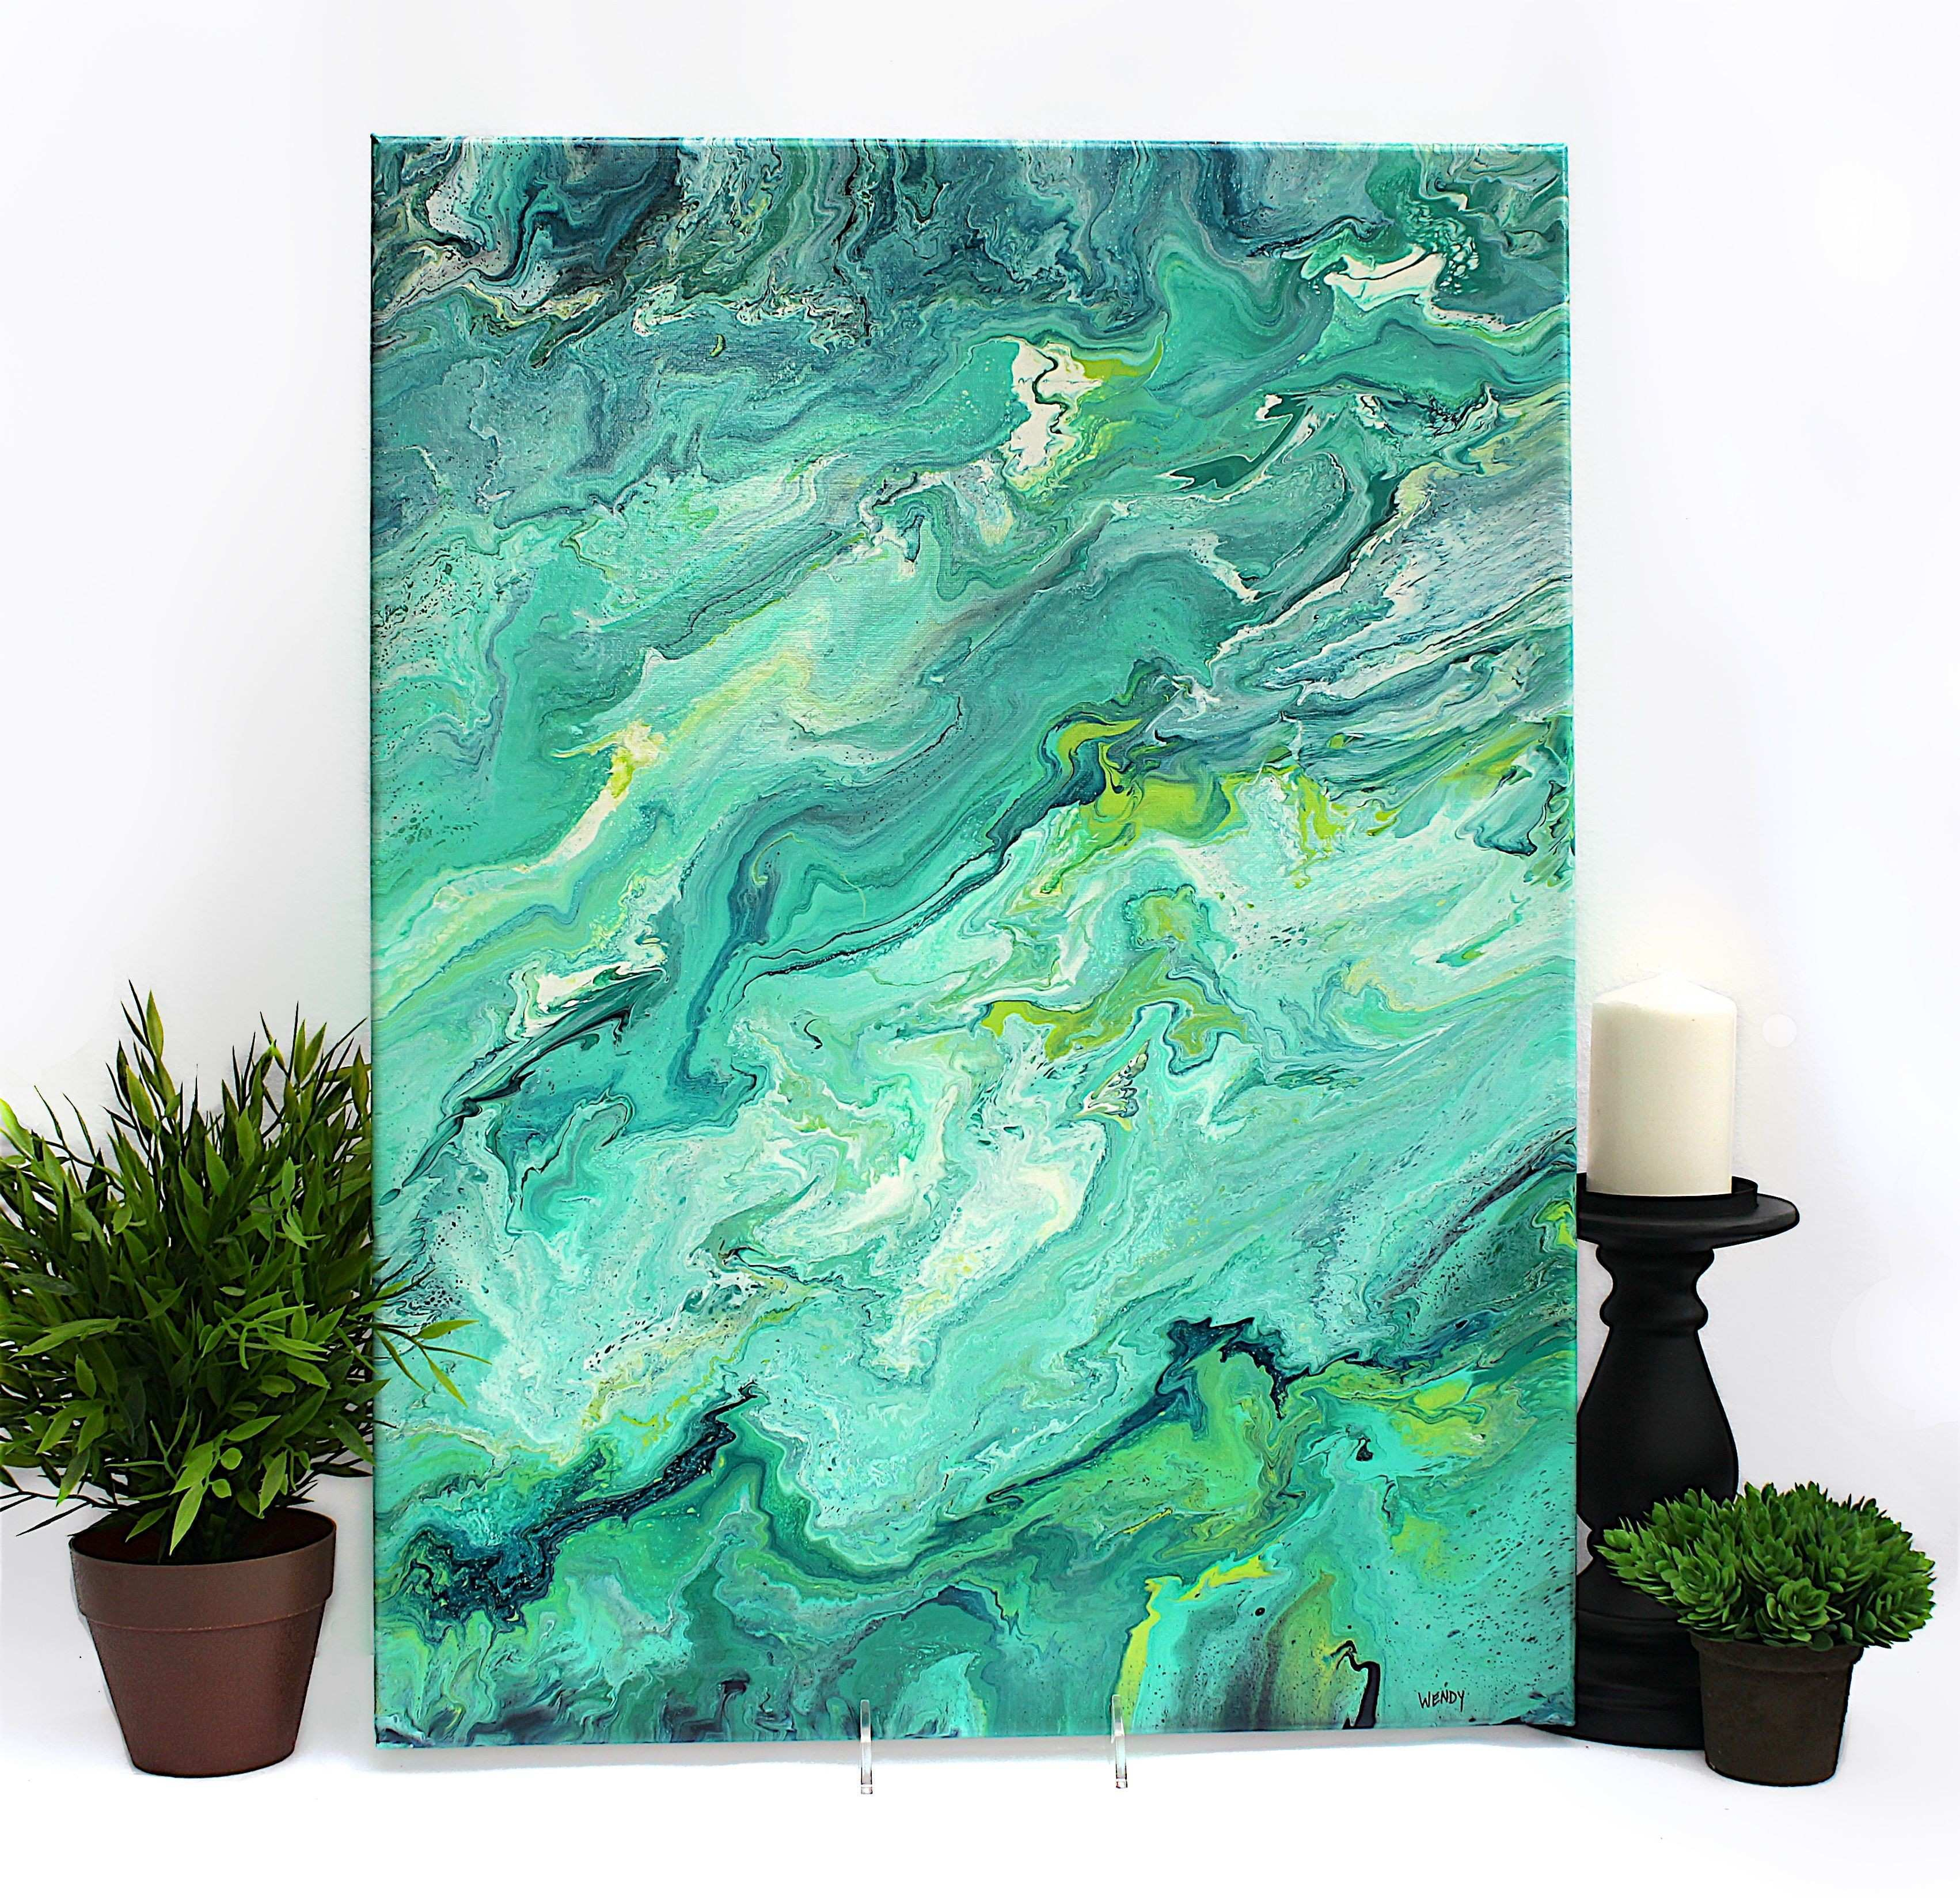 Vibrant teal and aqua original acrylic abstract painting 18x24 inch